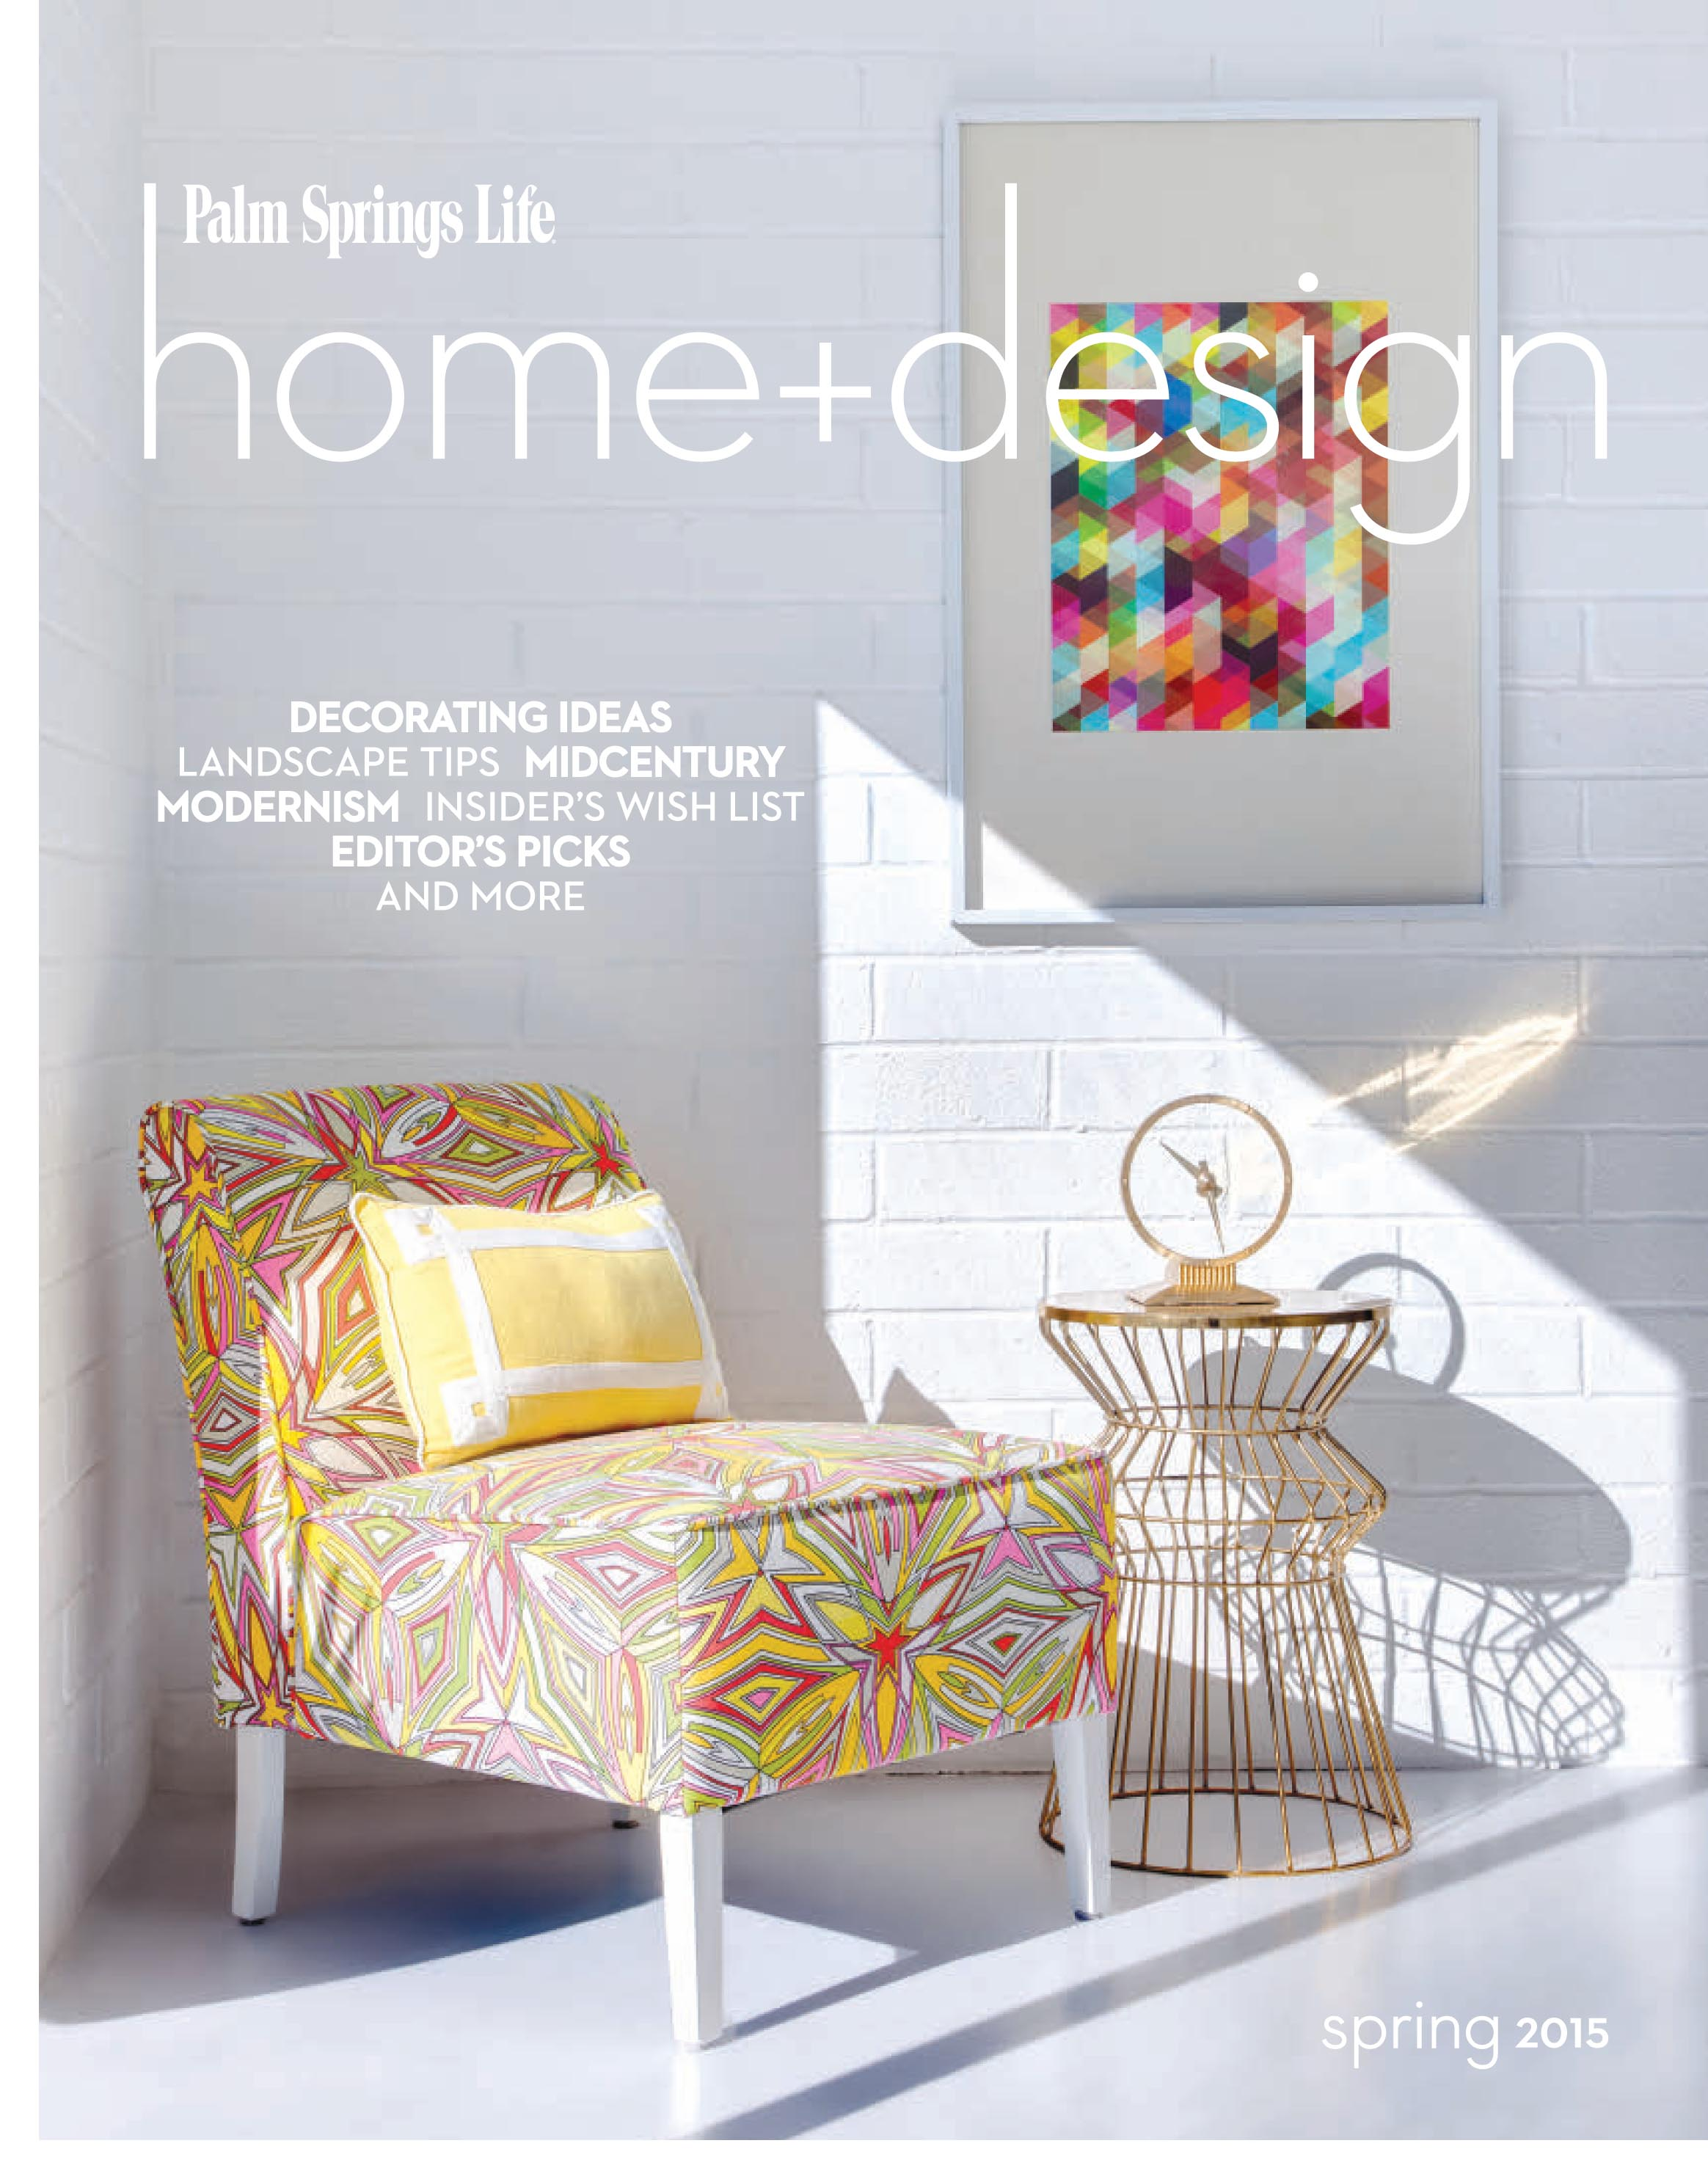 homedesign2015spring-cover.jpg